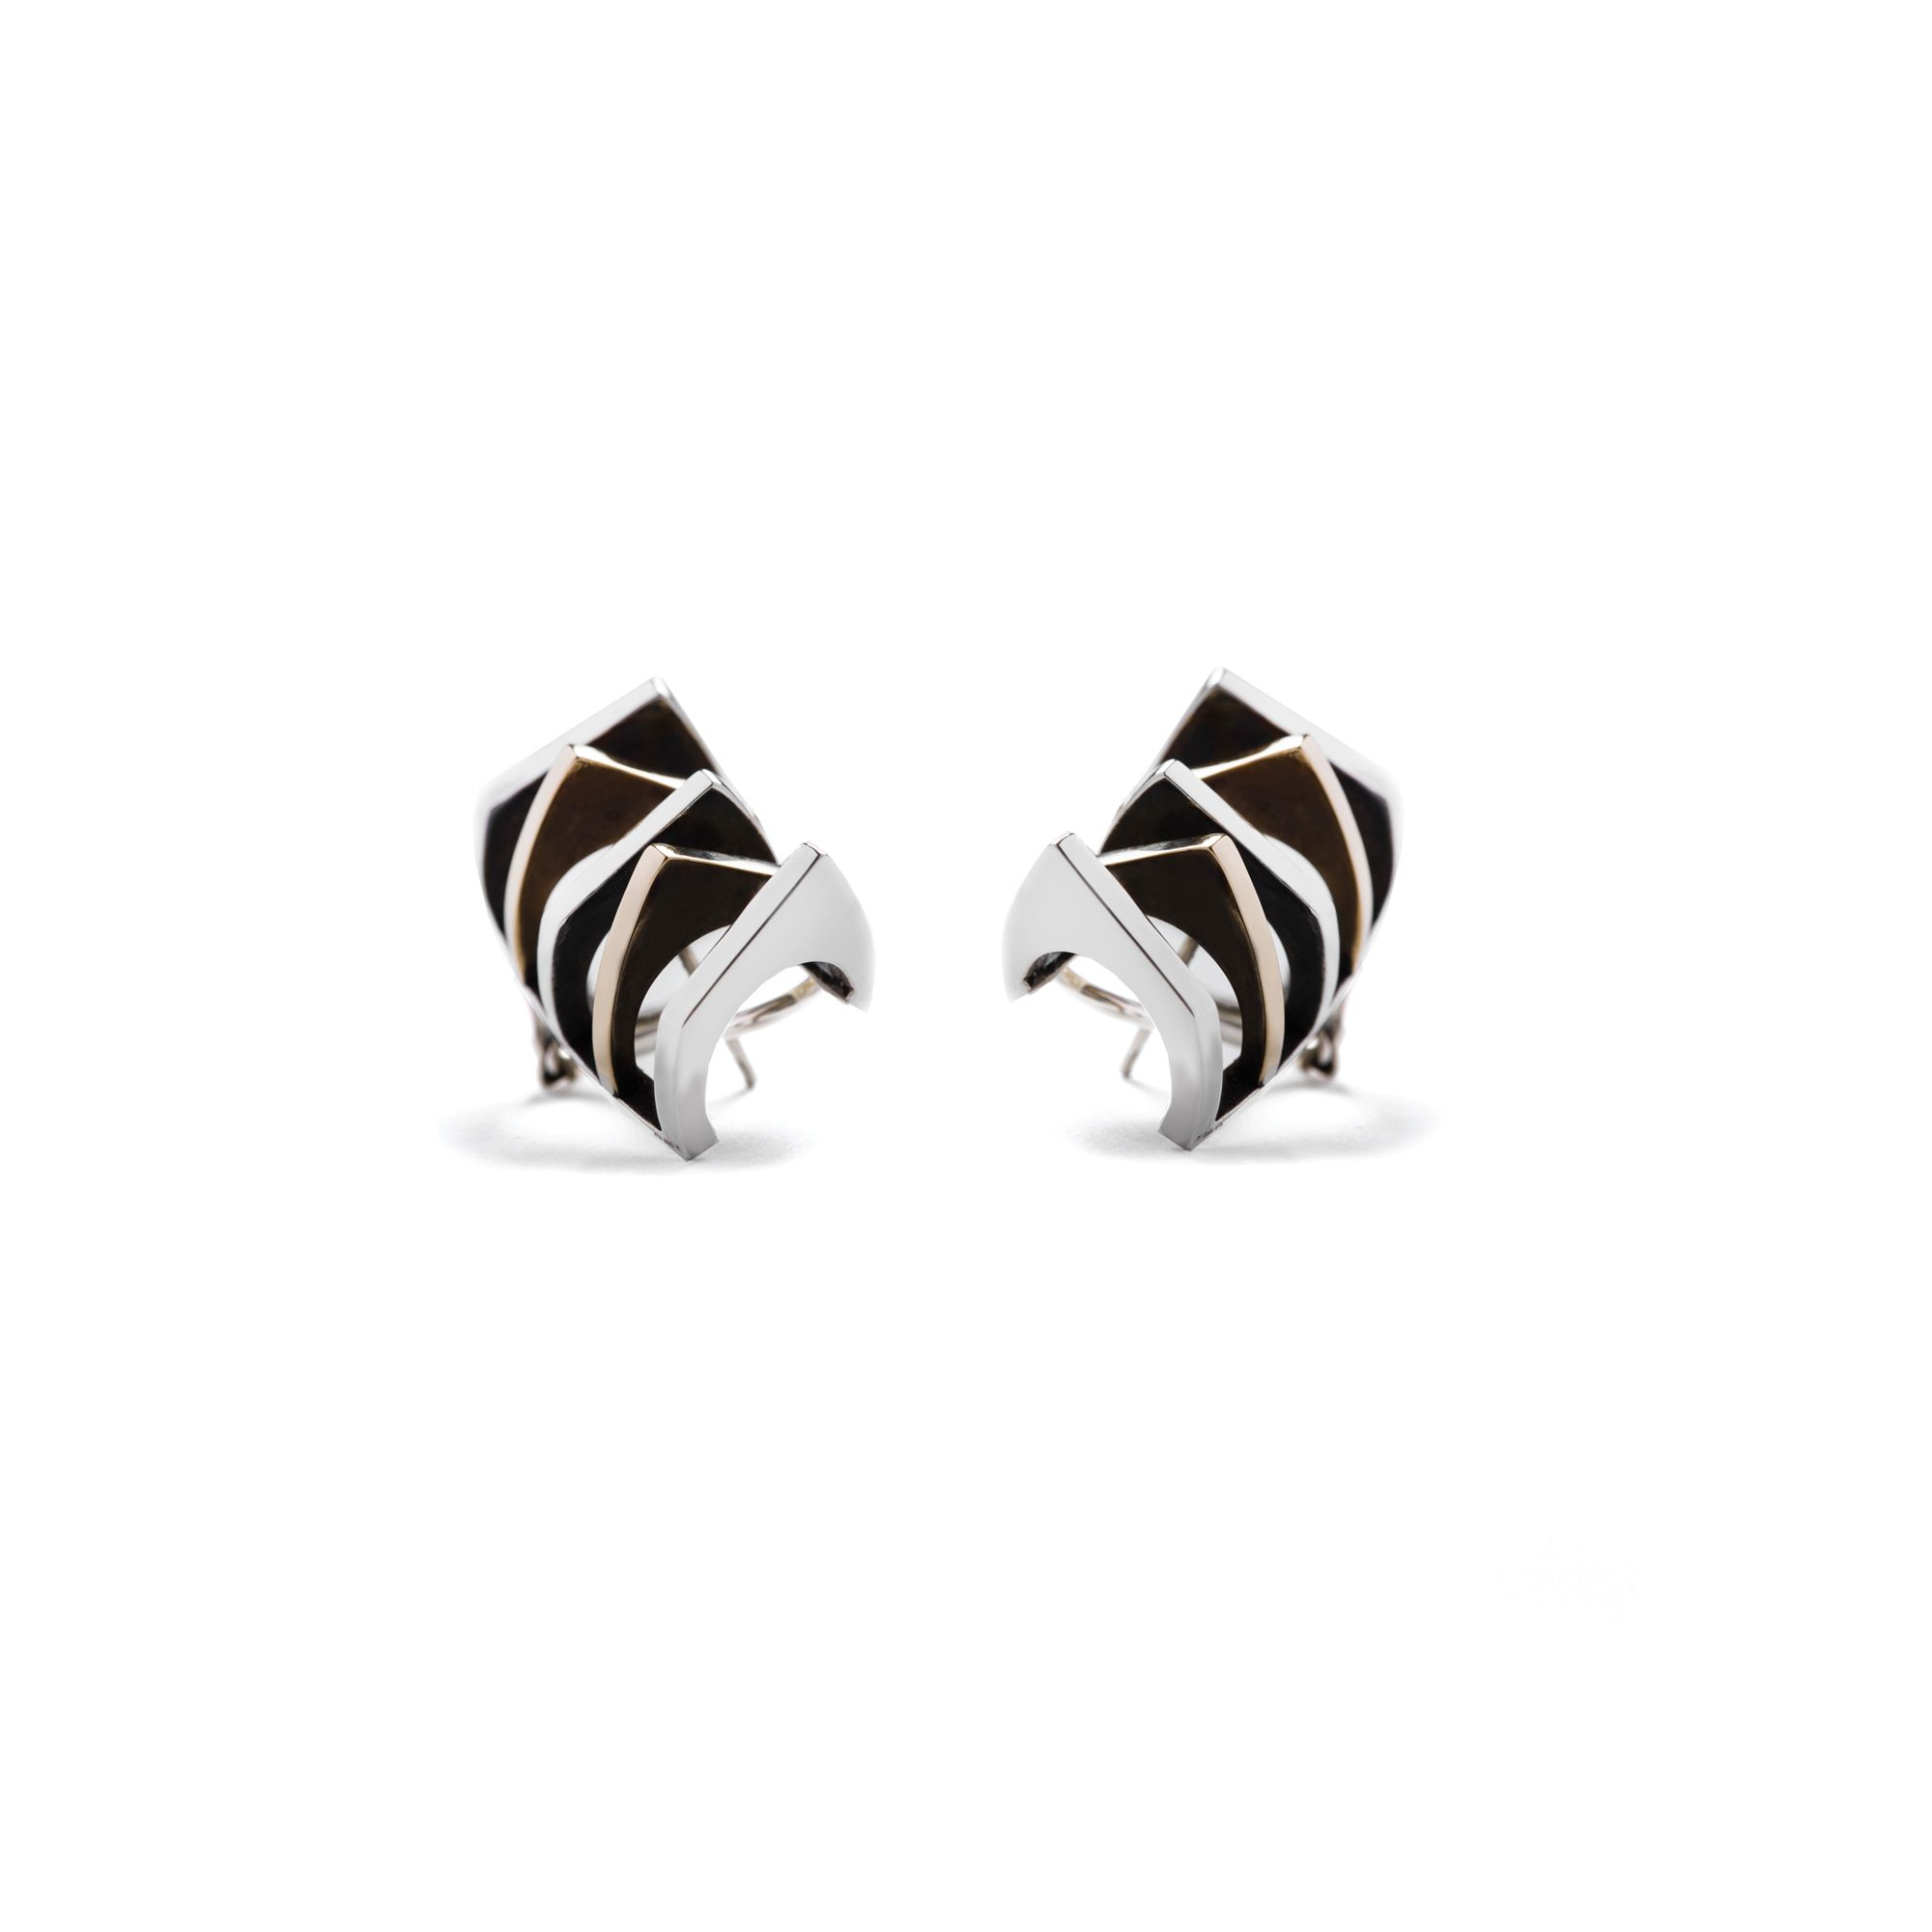 5 element 'Congiunzioni' earrings Earrings in silver and bronze